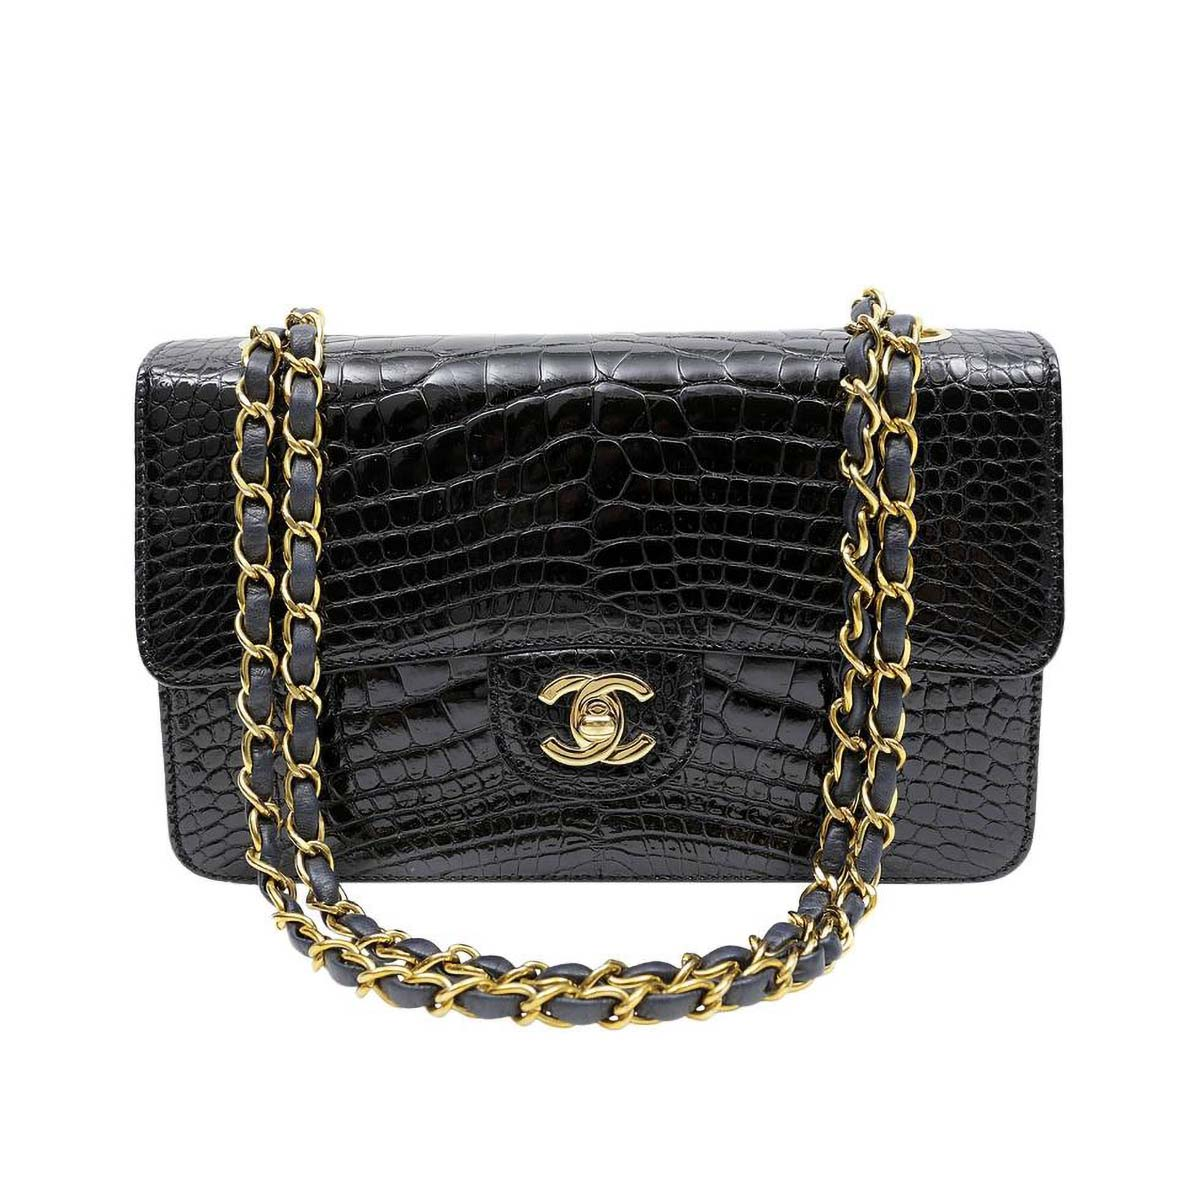 Chanel Medium Iconic Classic Single Flap Bag with Alligator Pattern